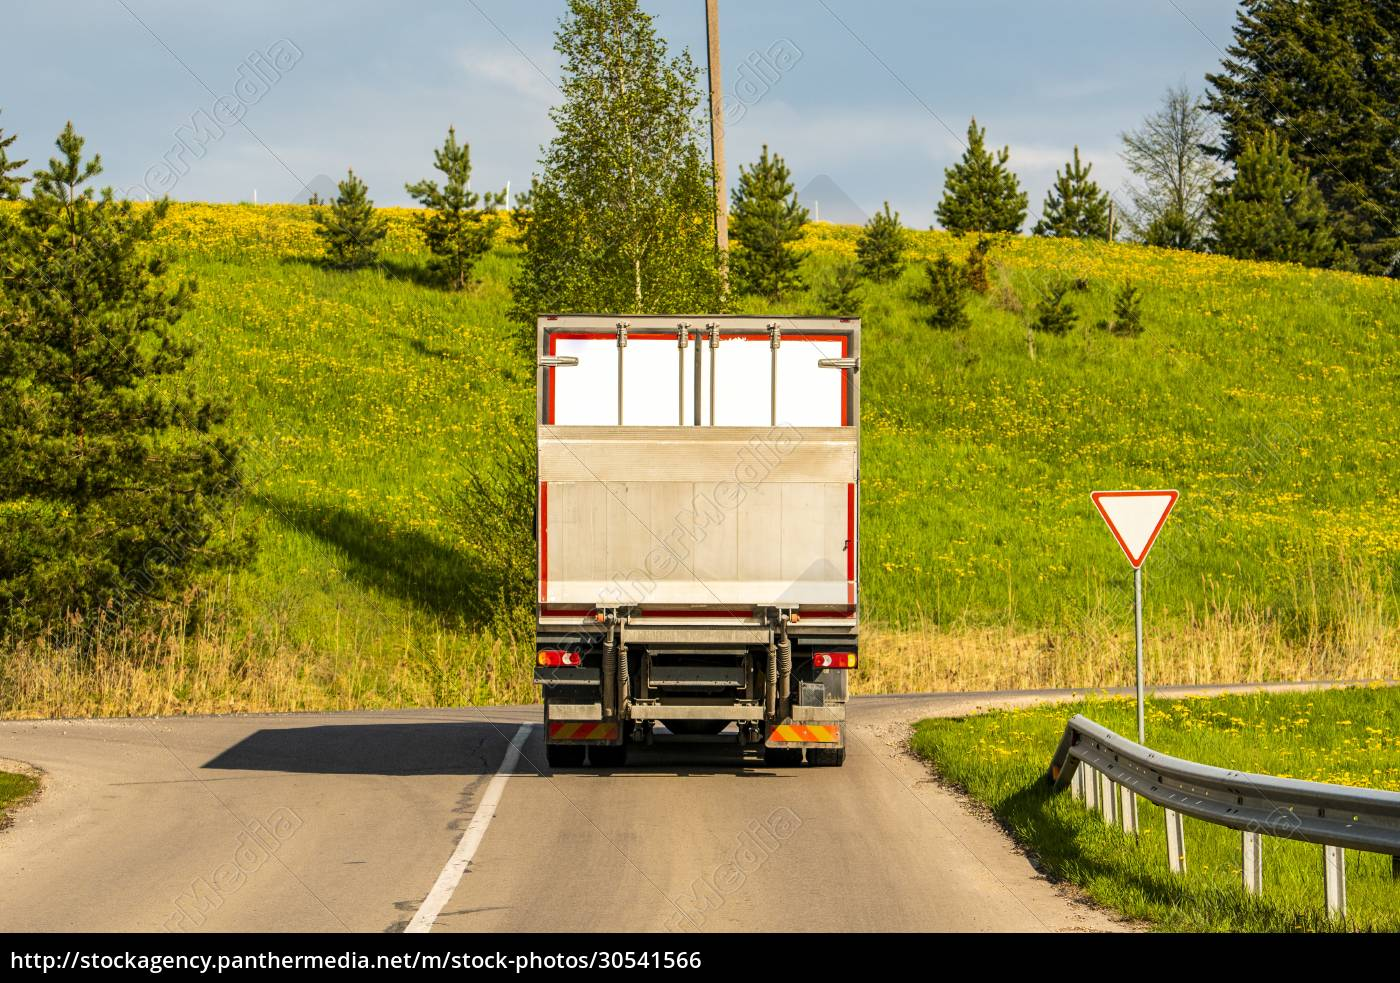 rear, view, of, truck, stopping, on - 30541566